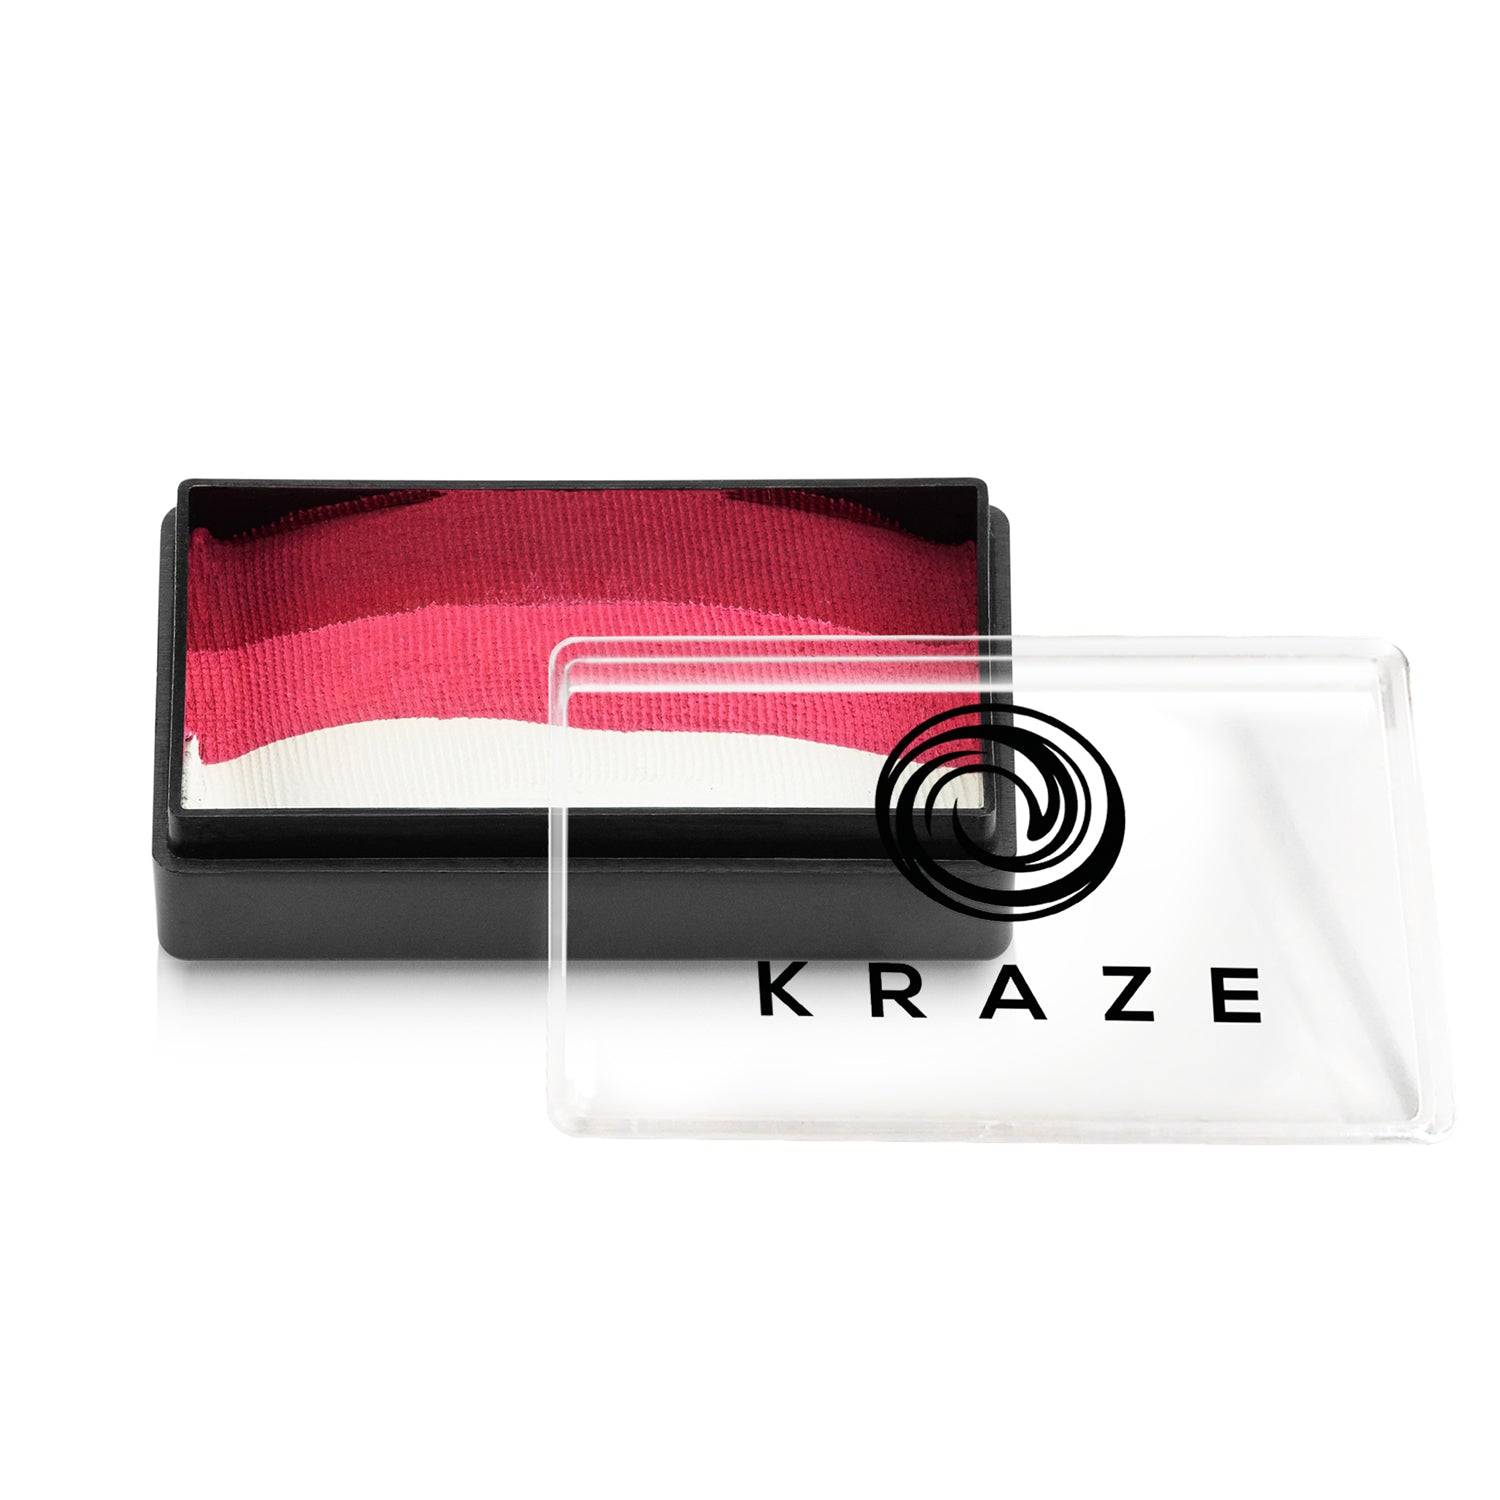 Kraze FX Domed One Stroke Cake - Bloodberry (25 gm)